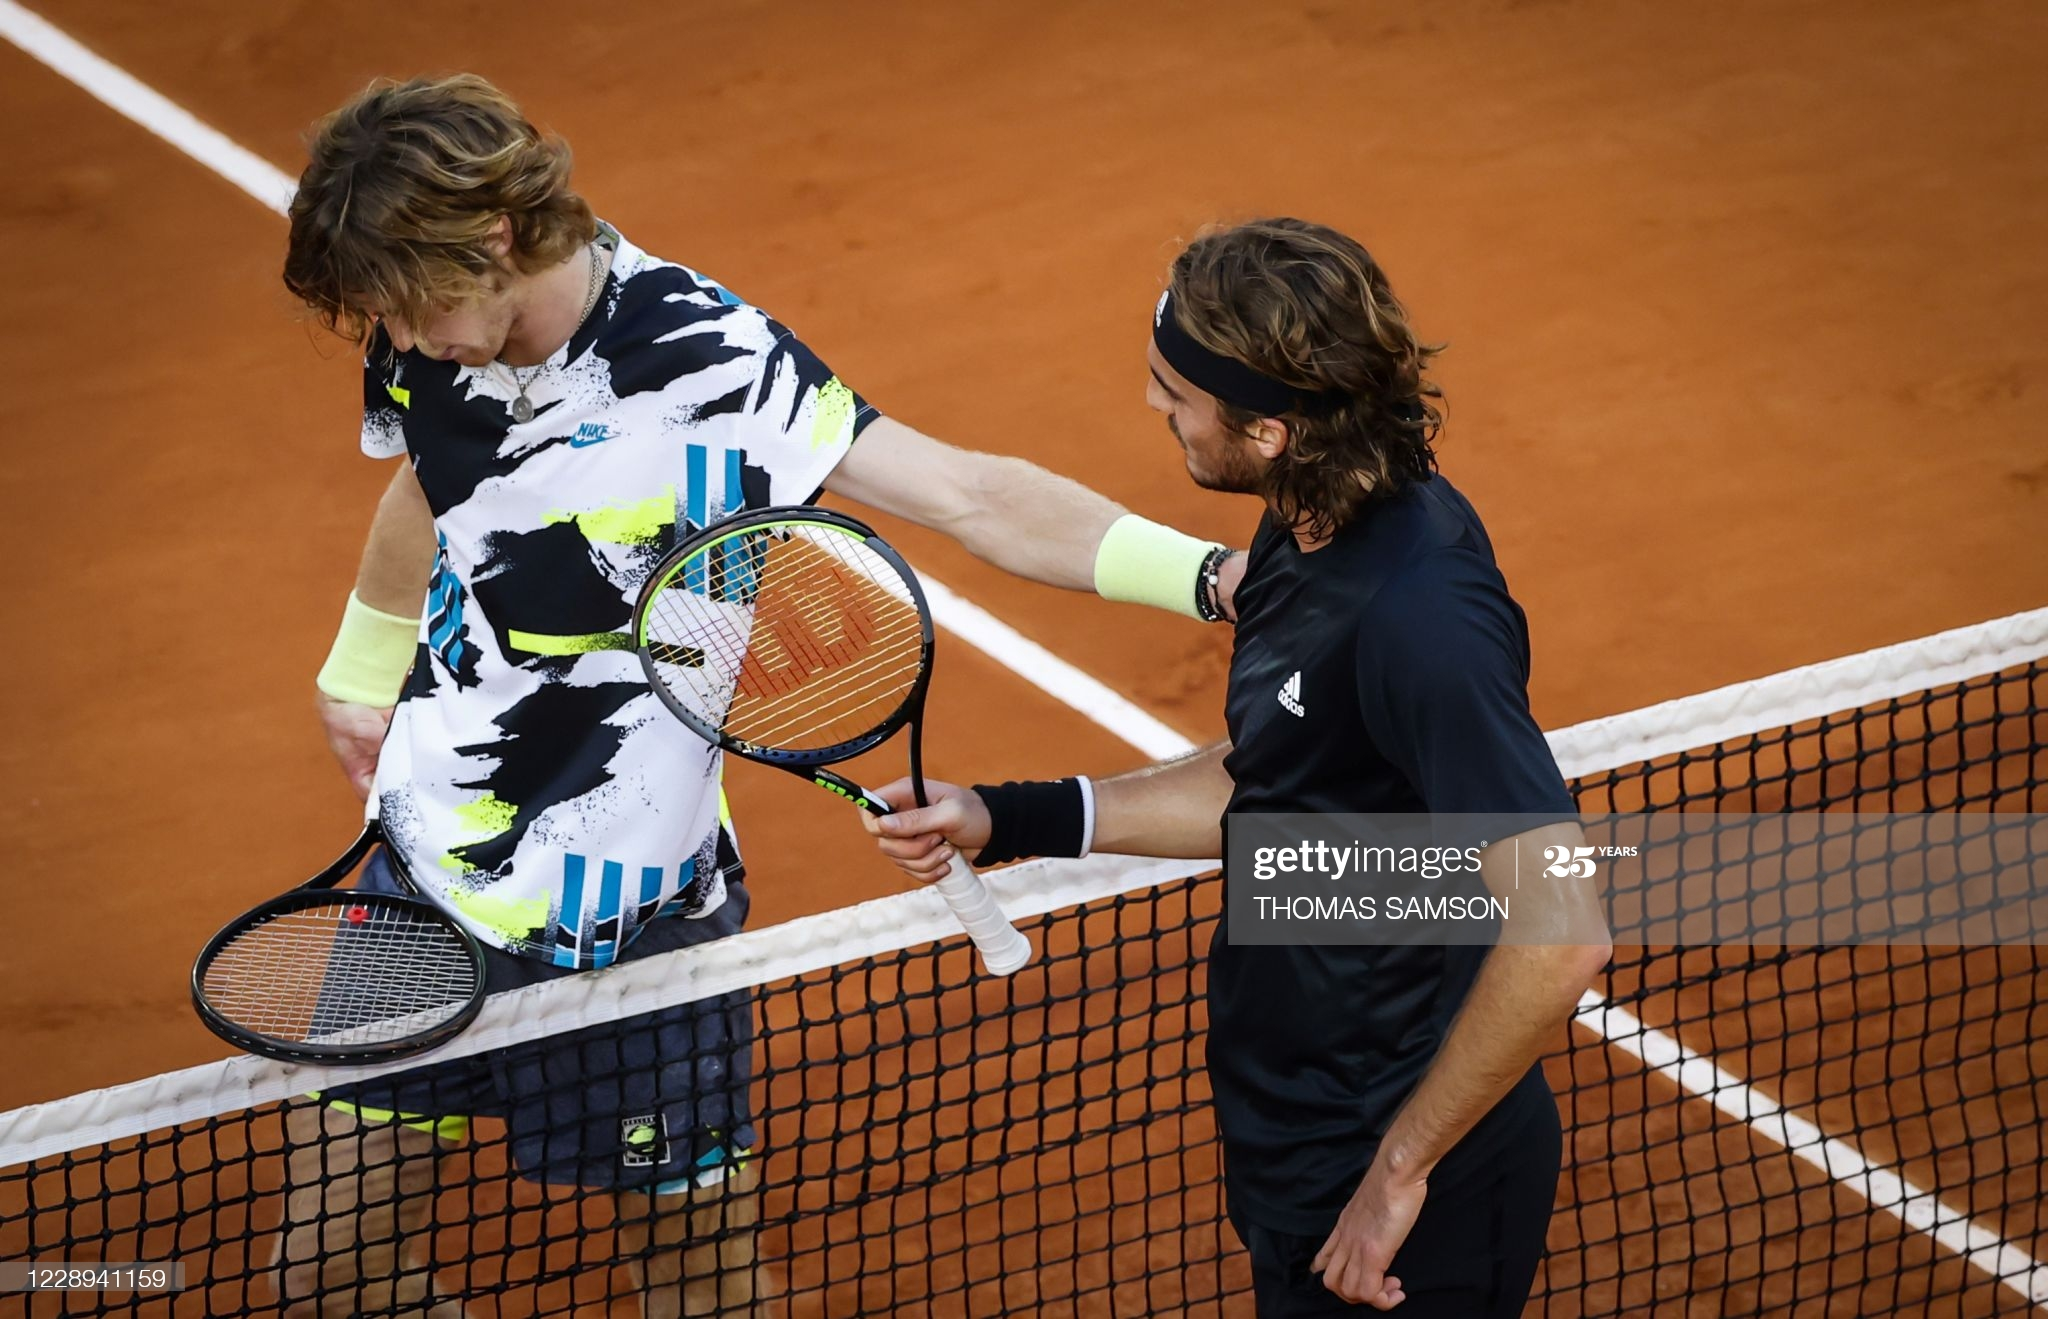 tsitsipas rublev day 11 french open 2020